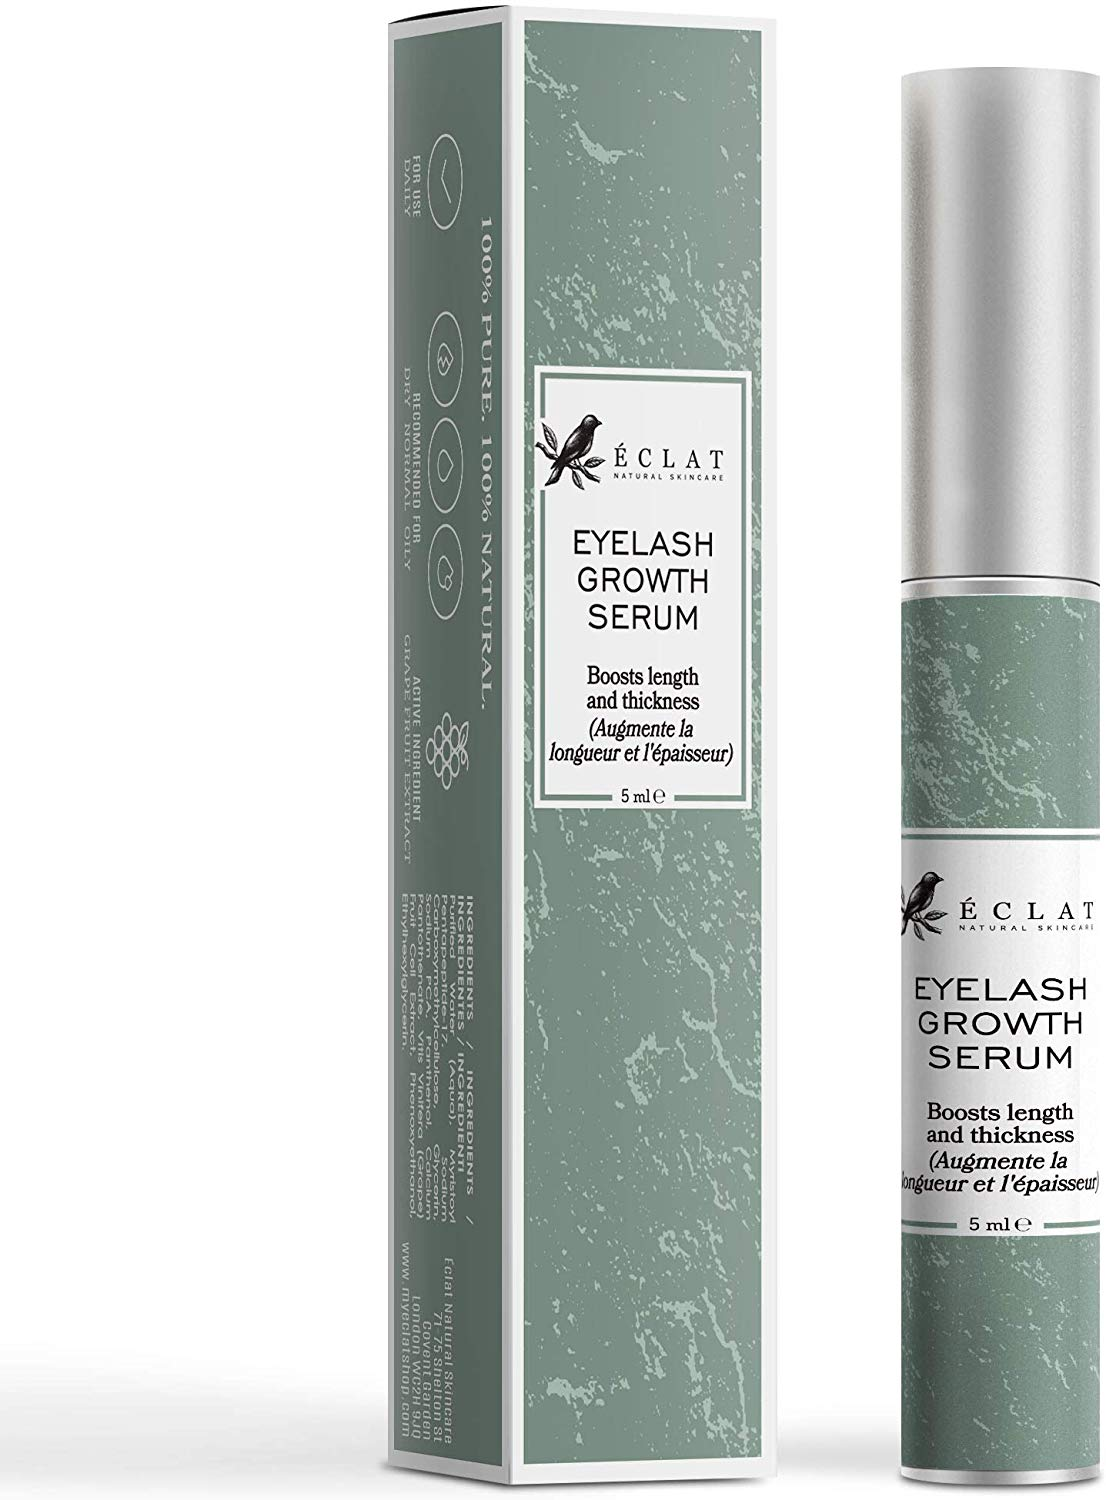 Eclat Eyelash Growth Serum – Eye Lash Growth Serum